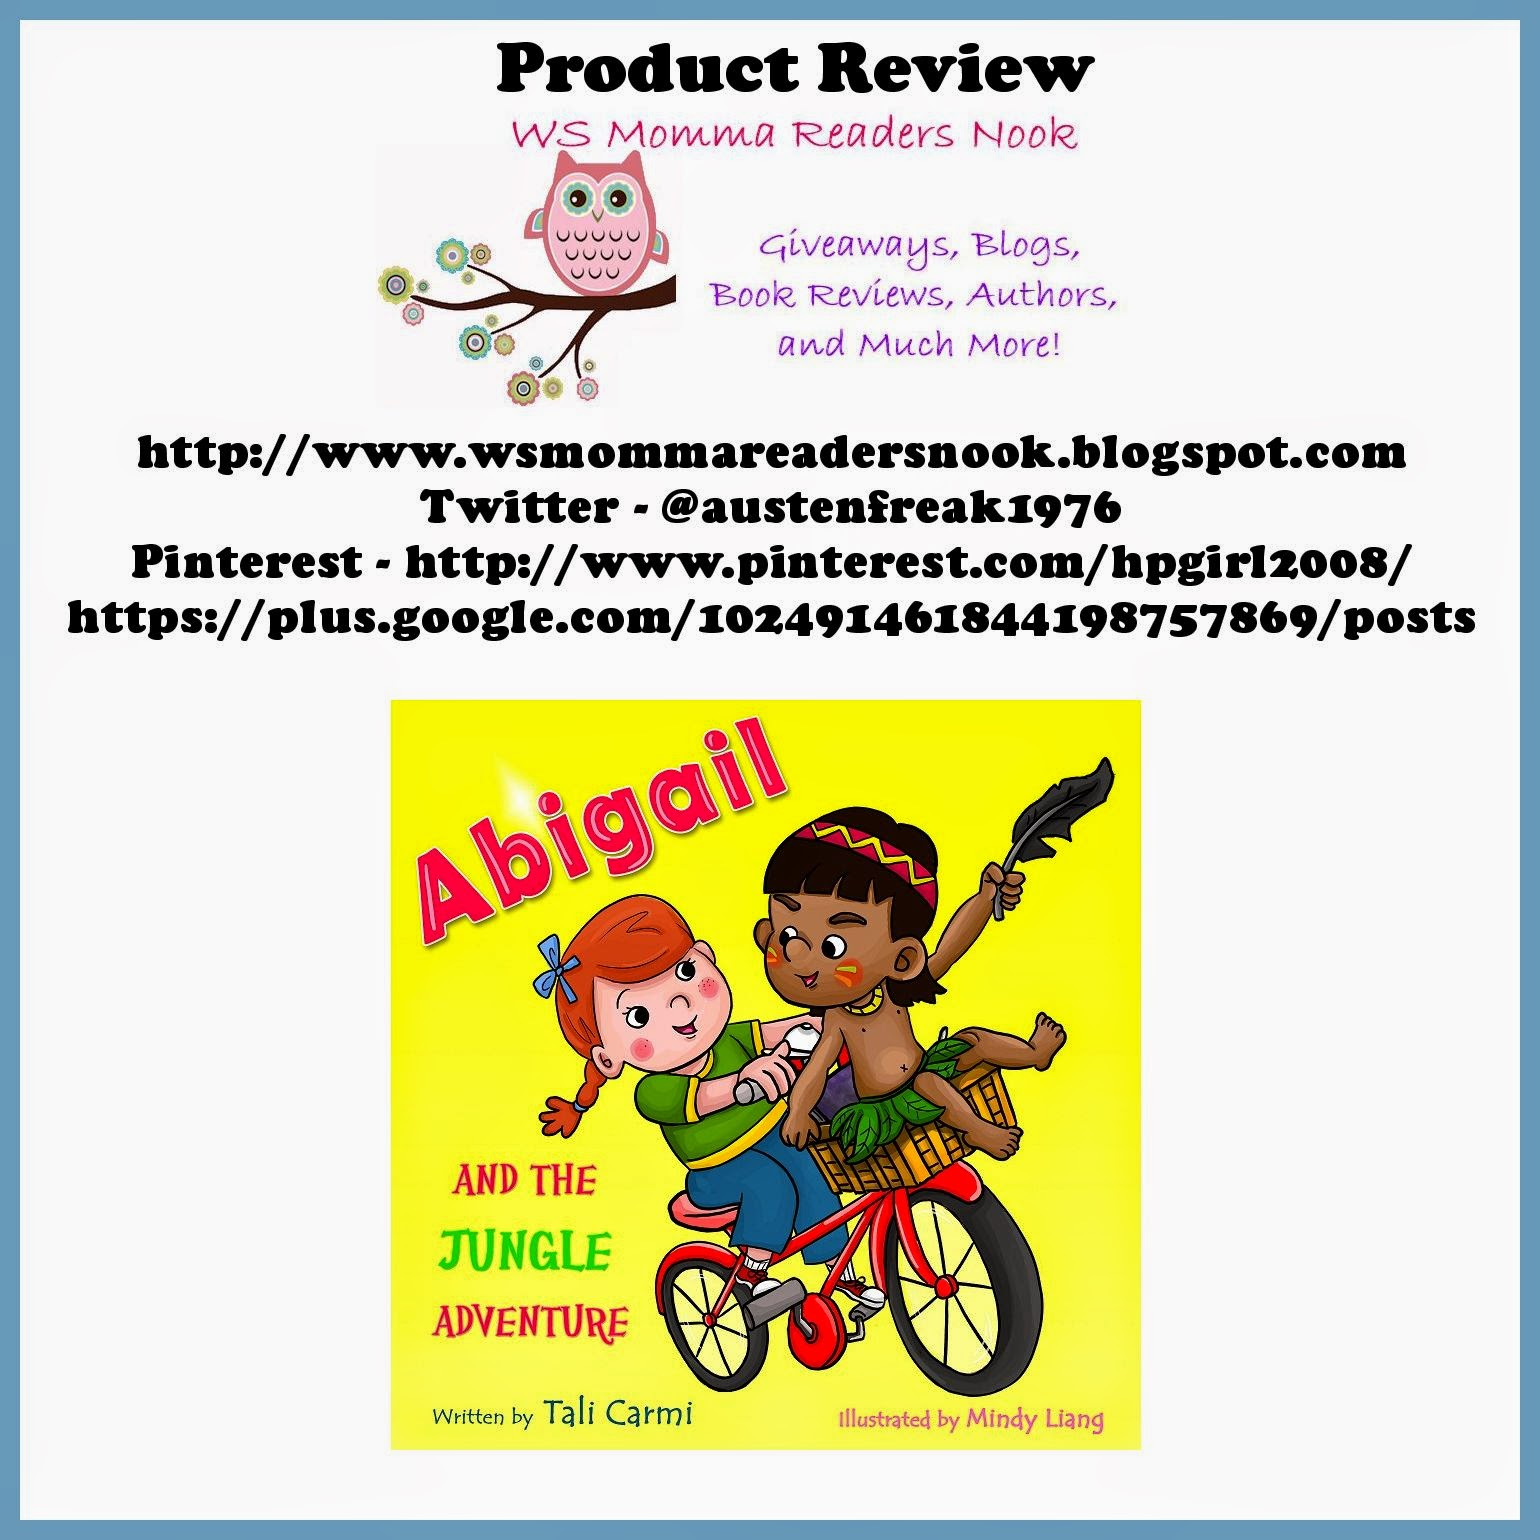 http://www.amazon.com/Children-books-Adventure-Preschool-collection-ebook/dp/B00HNCTDJ2/ref=sr_1_1?s=digital-text&ie=UTF8&qid=1411270067&sr=1-1&keywords=abigail+and+the+jungle+adventure